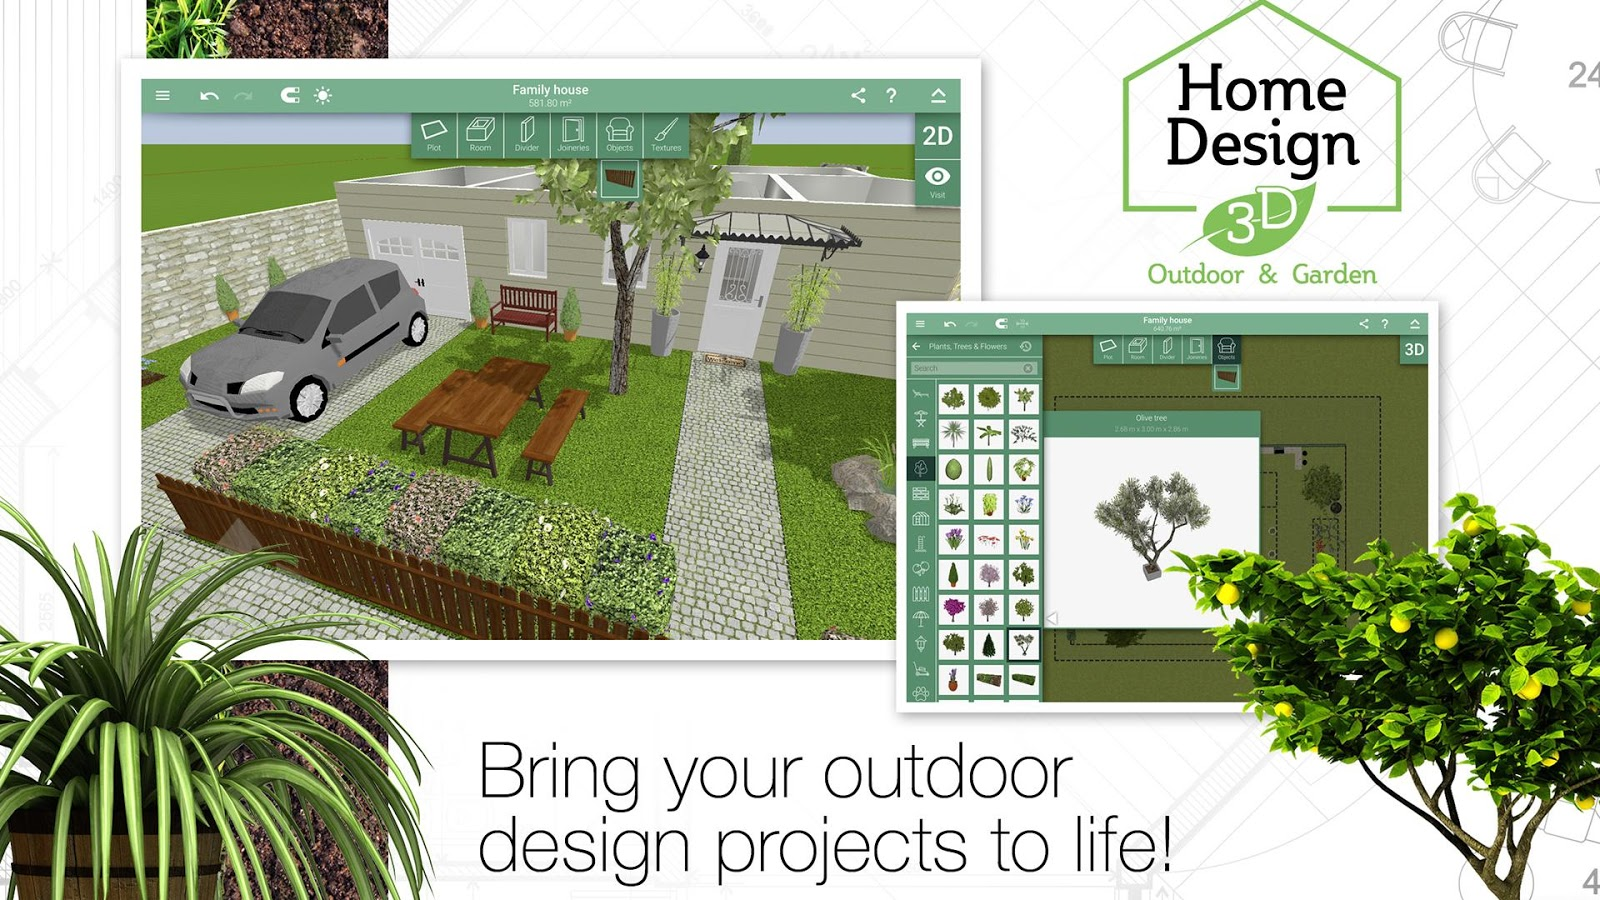 Home design 3d outdoor garden 4 0 8 apk obb data file - Free 3d home design software for mac ...